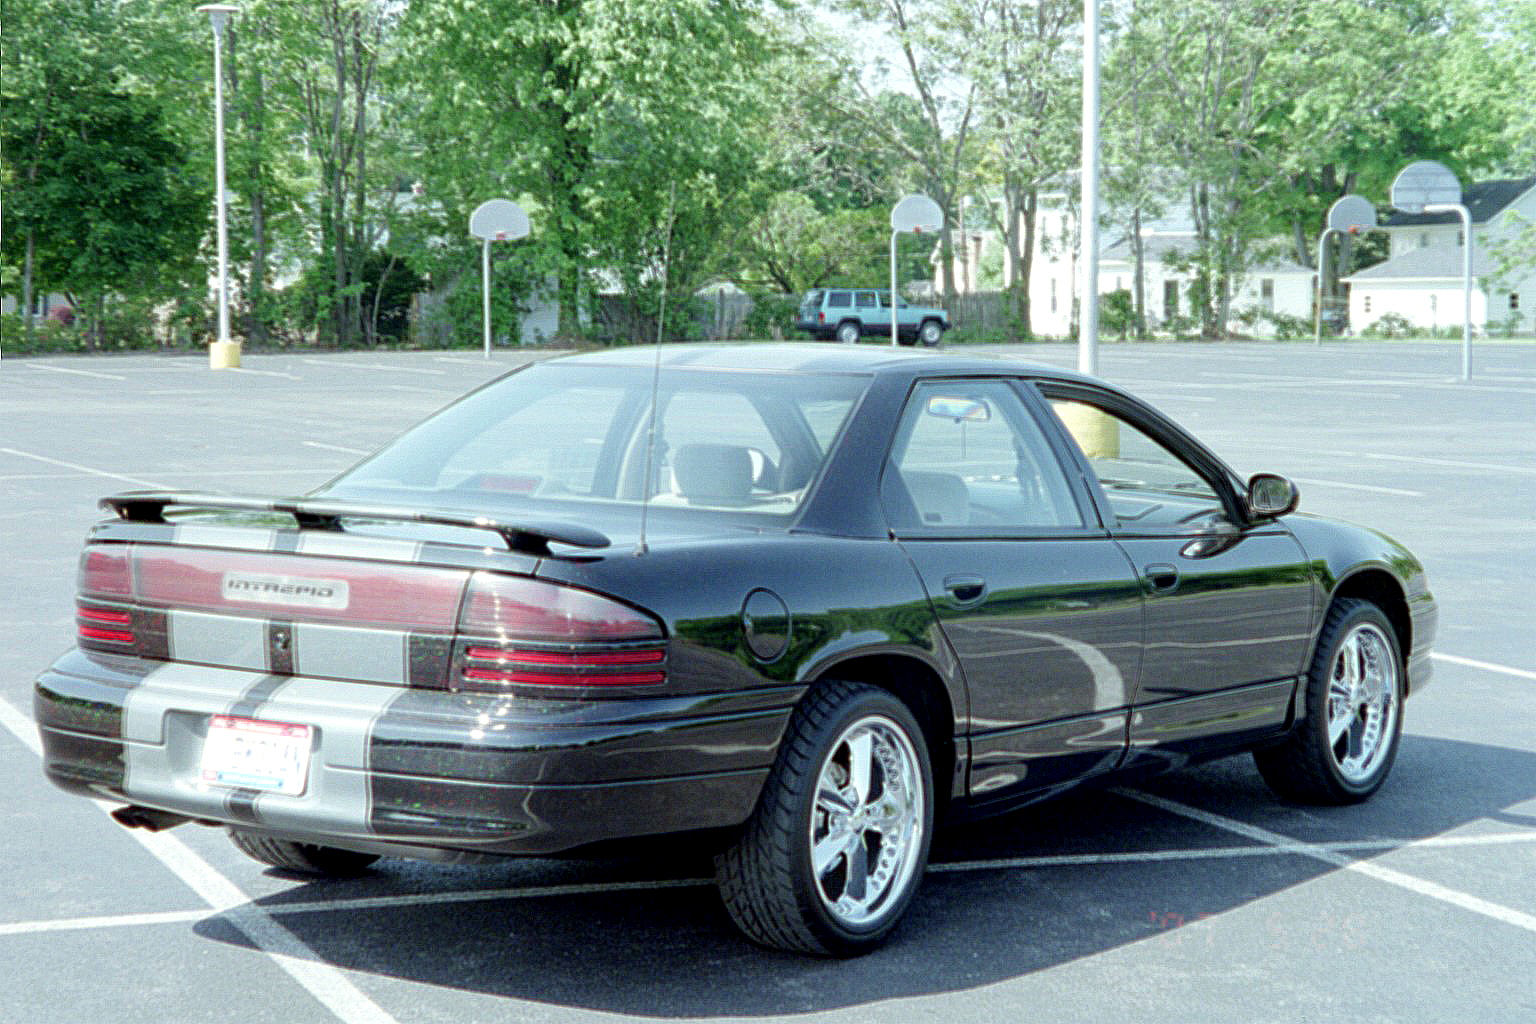 p0700 dodge intrepid - Video Search Engine at Search.com